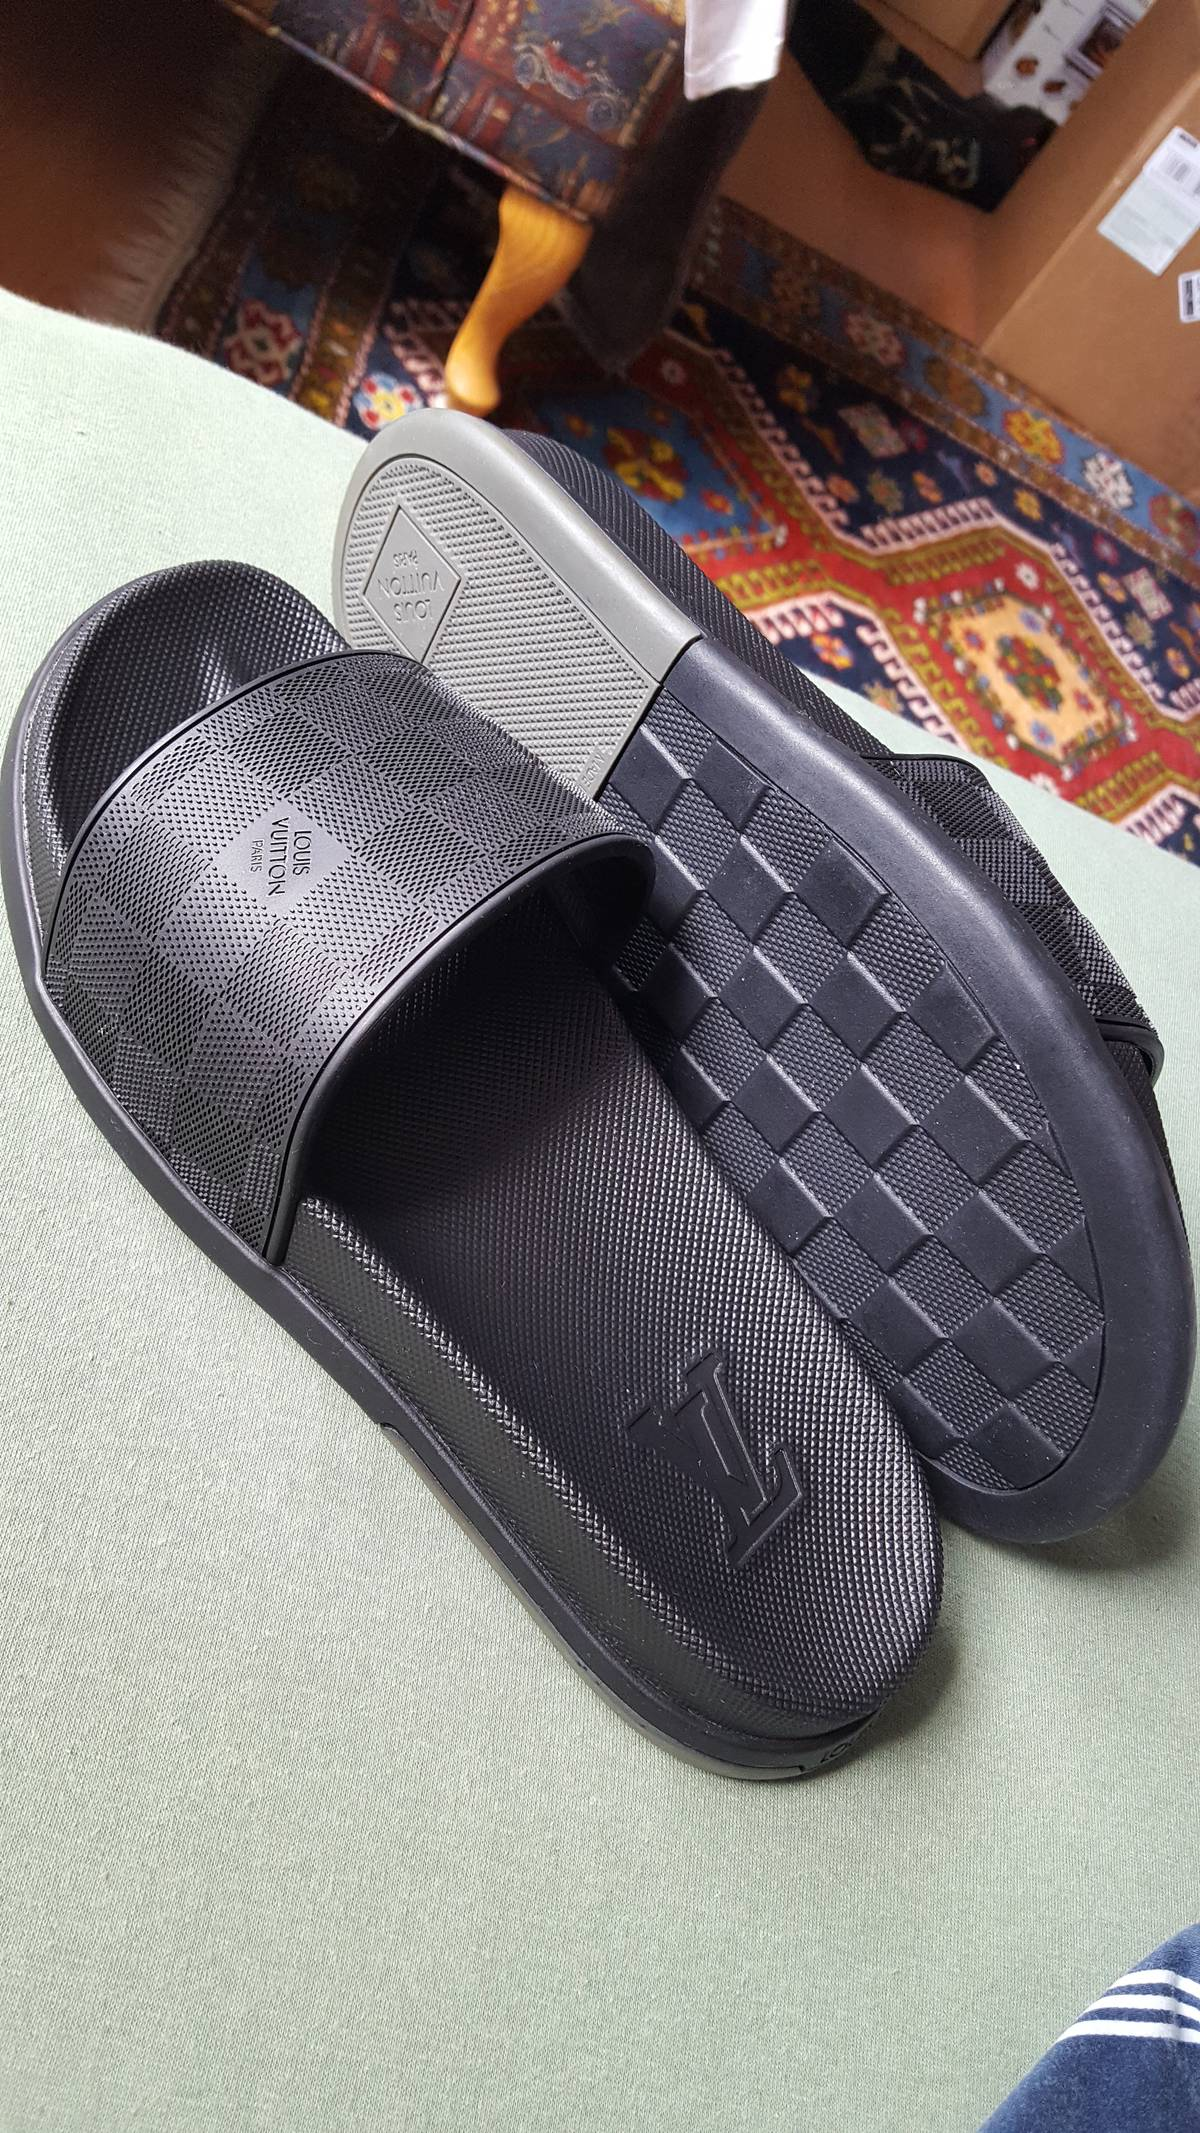 cb35b0b6460a Louis Vuitton. Louis Vuitton Damier Sandals  Flip Flops WaterFront Mule